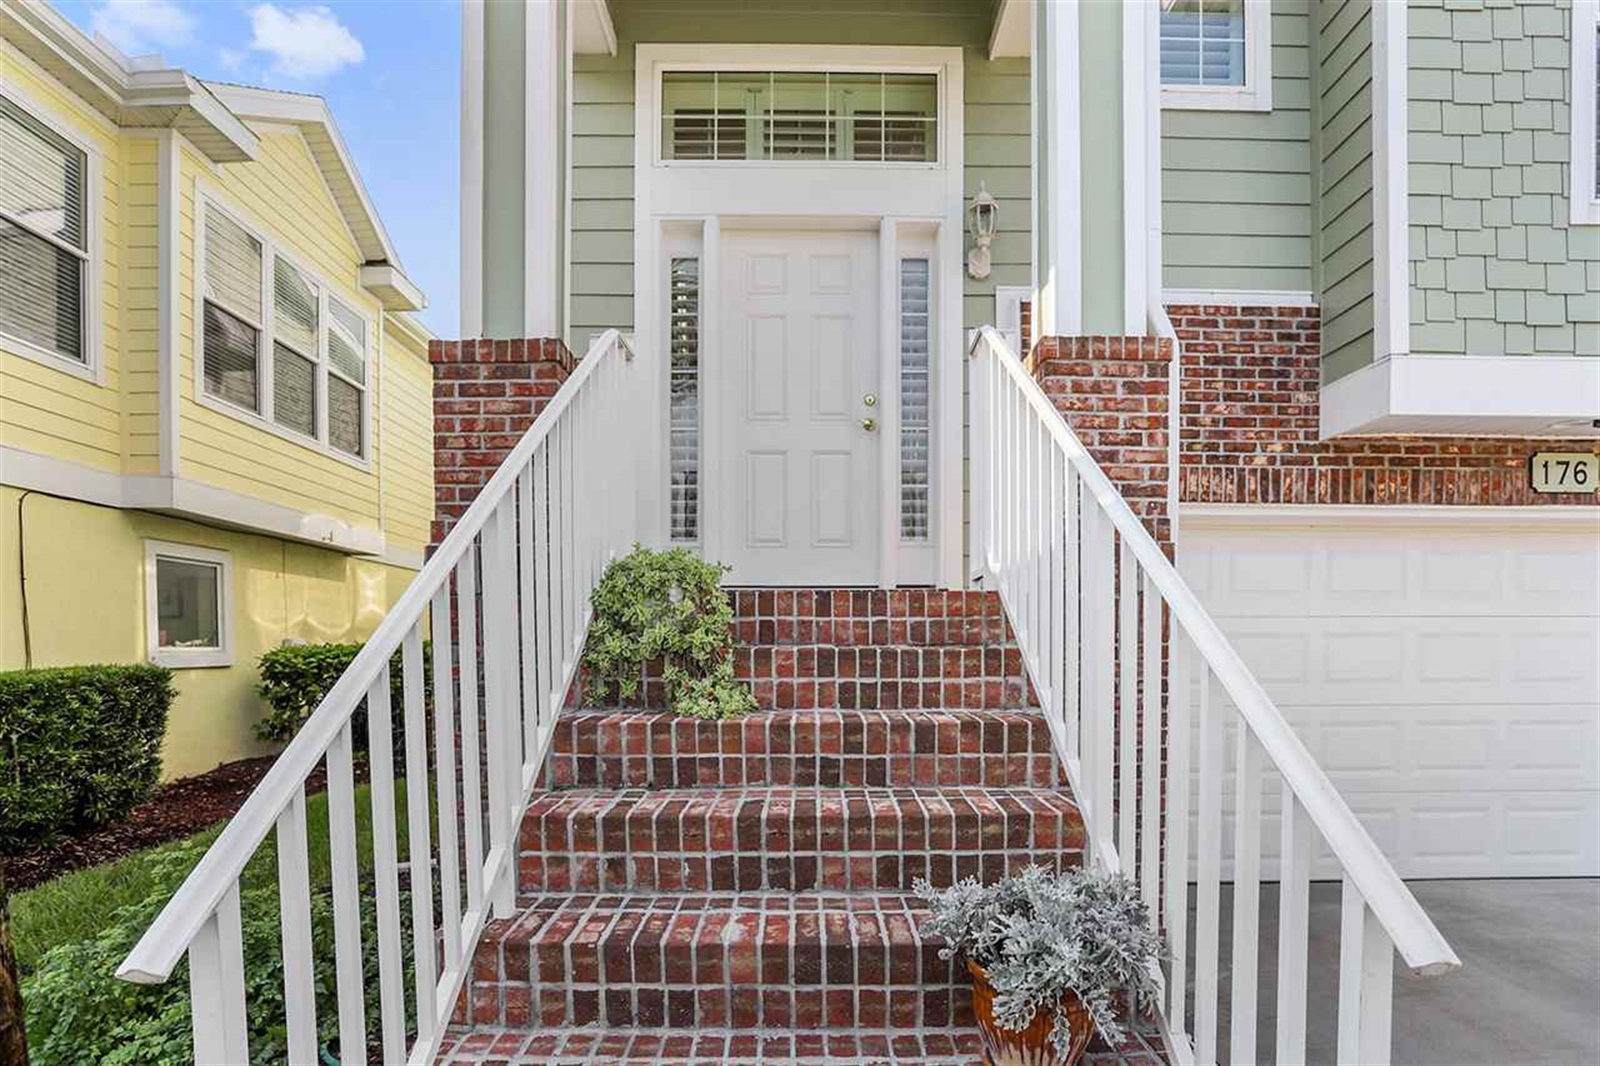 Real Estate Photography - 176 Sunset Cir N, Saint Augustine, FL, 32080 - Location 2